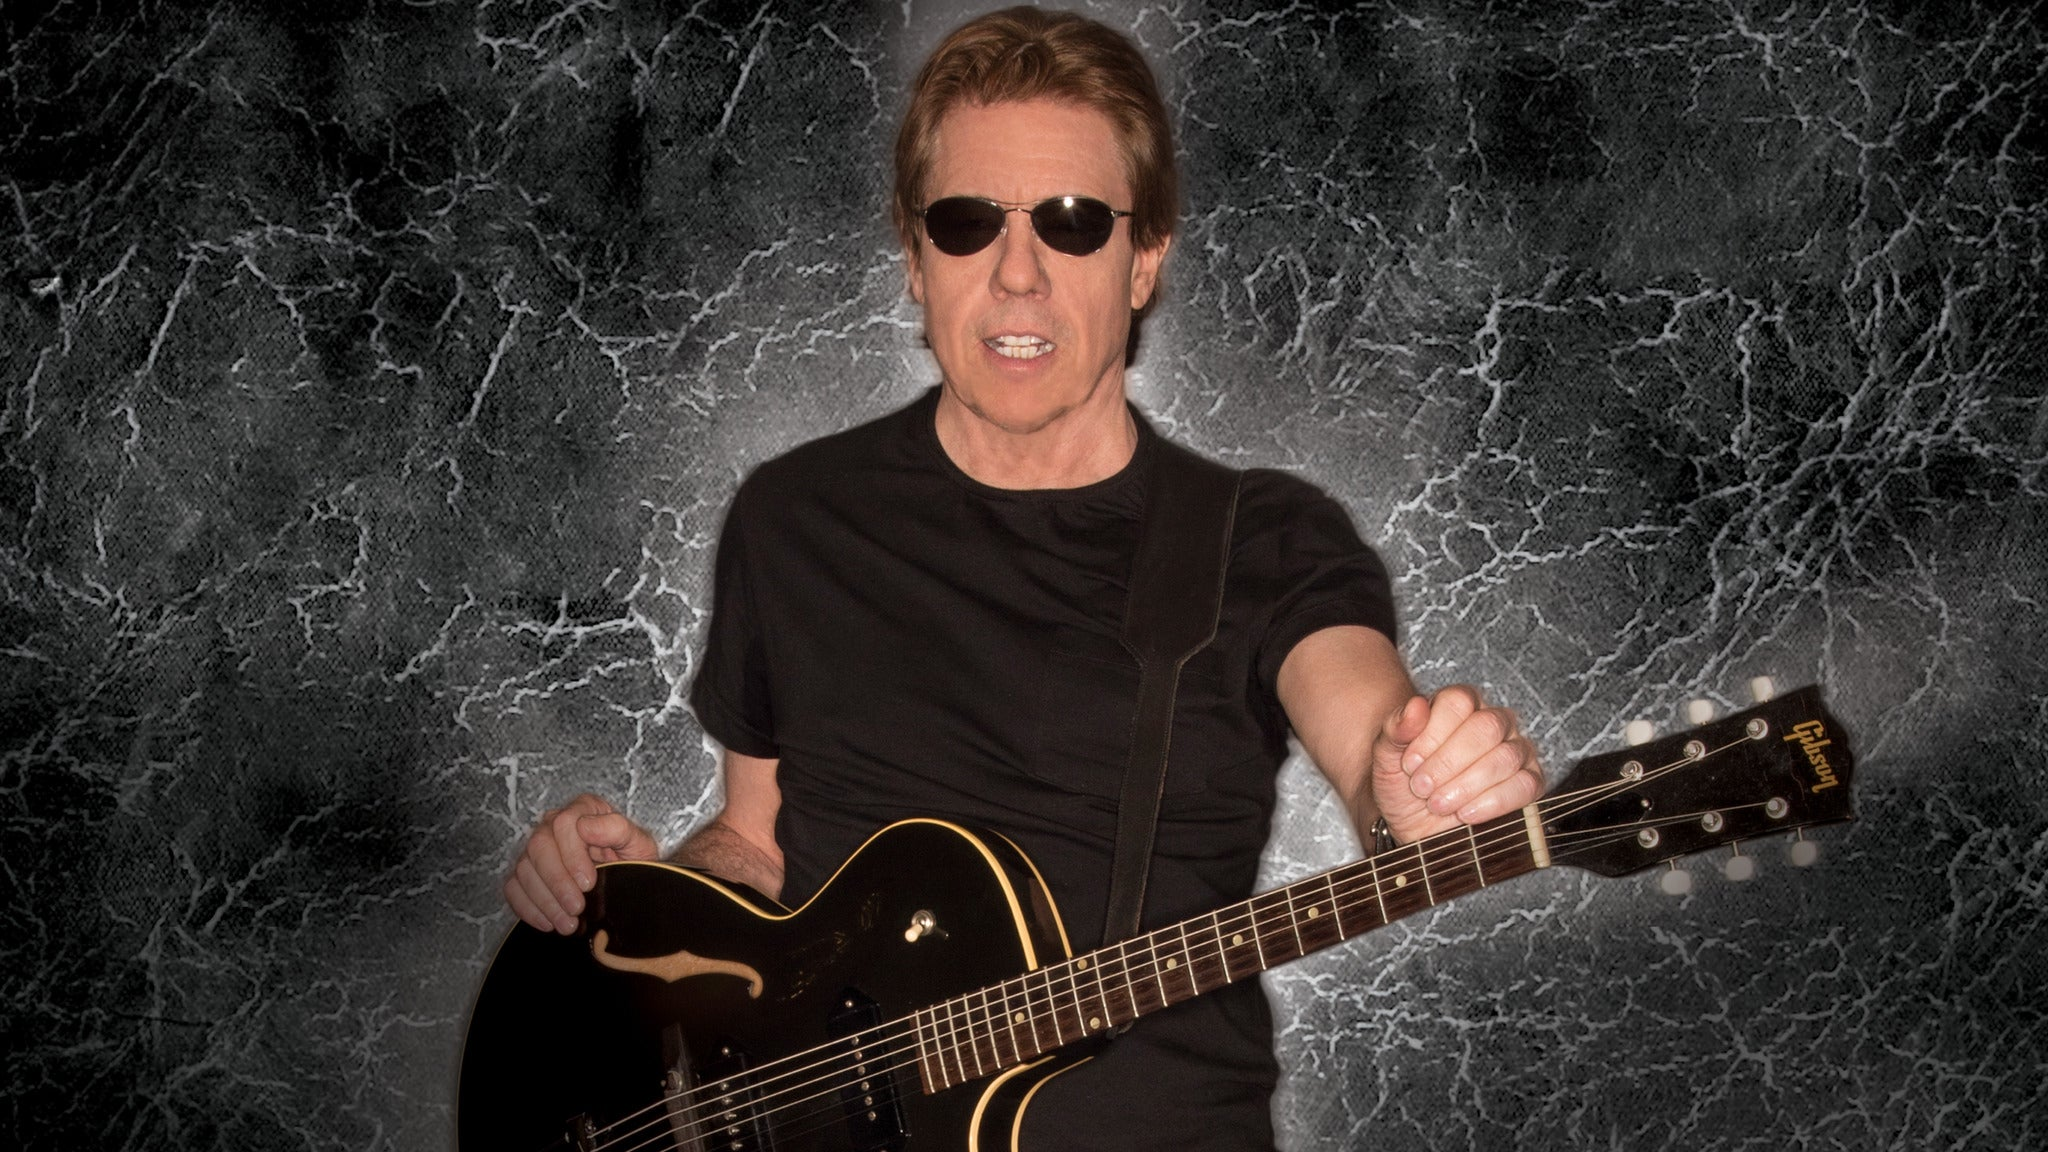 George Thorogood & The Destroyers at Lexington Opera House